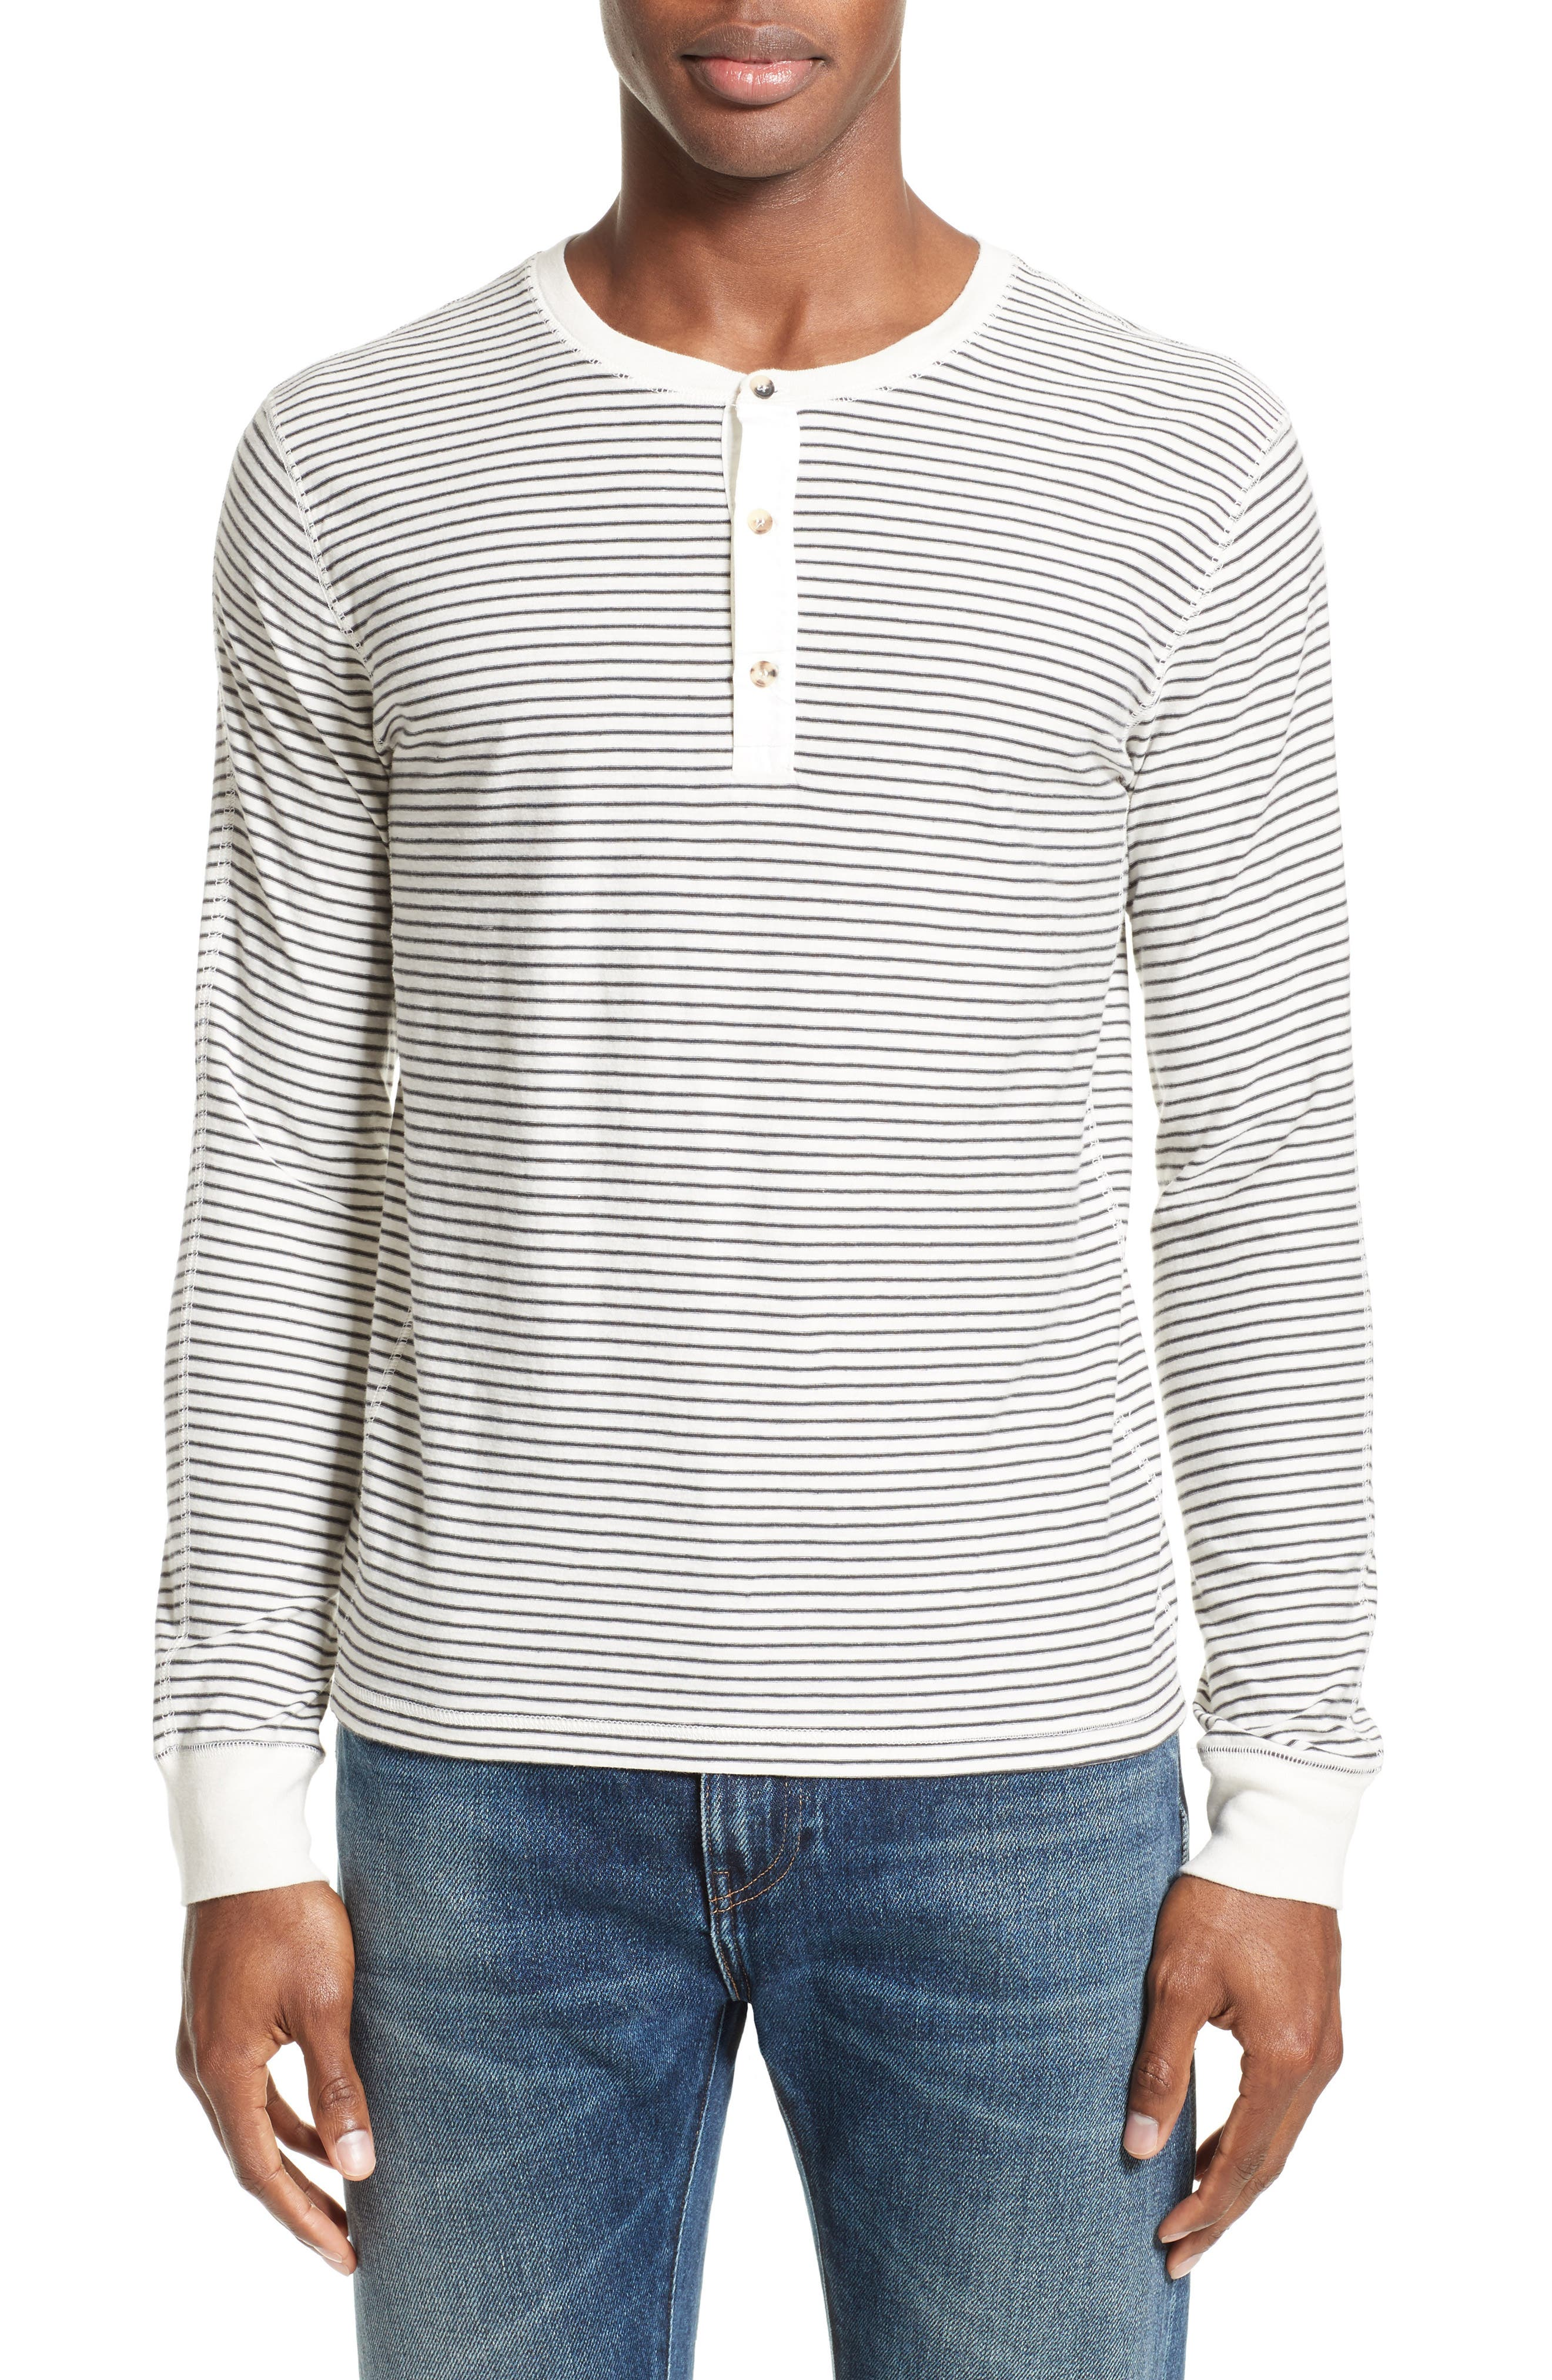 Main Image - Levi's® Made & Crafted™ Stripe Henley